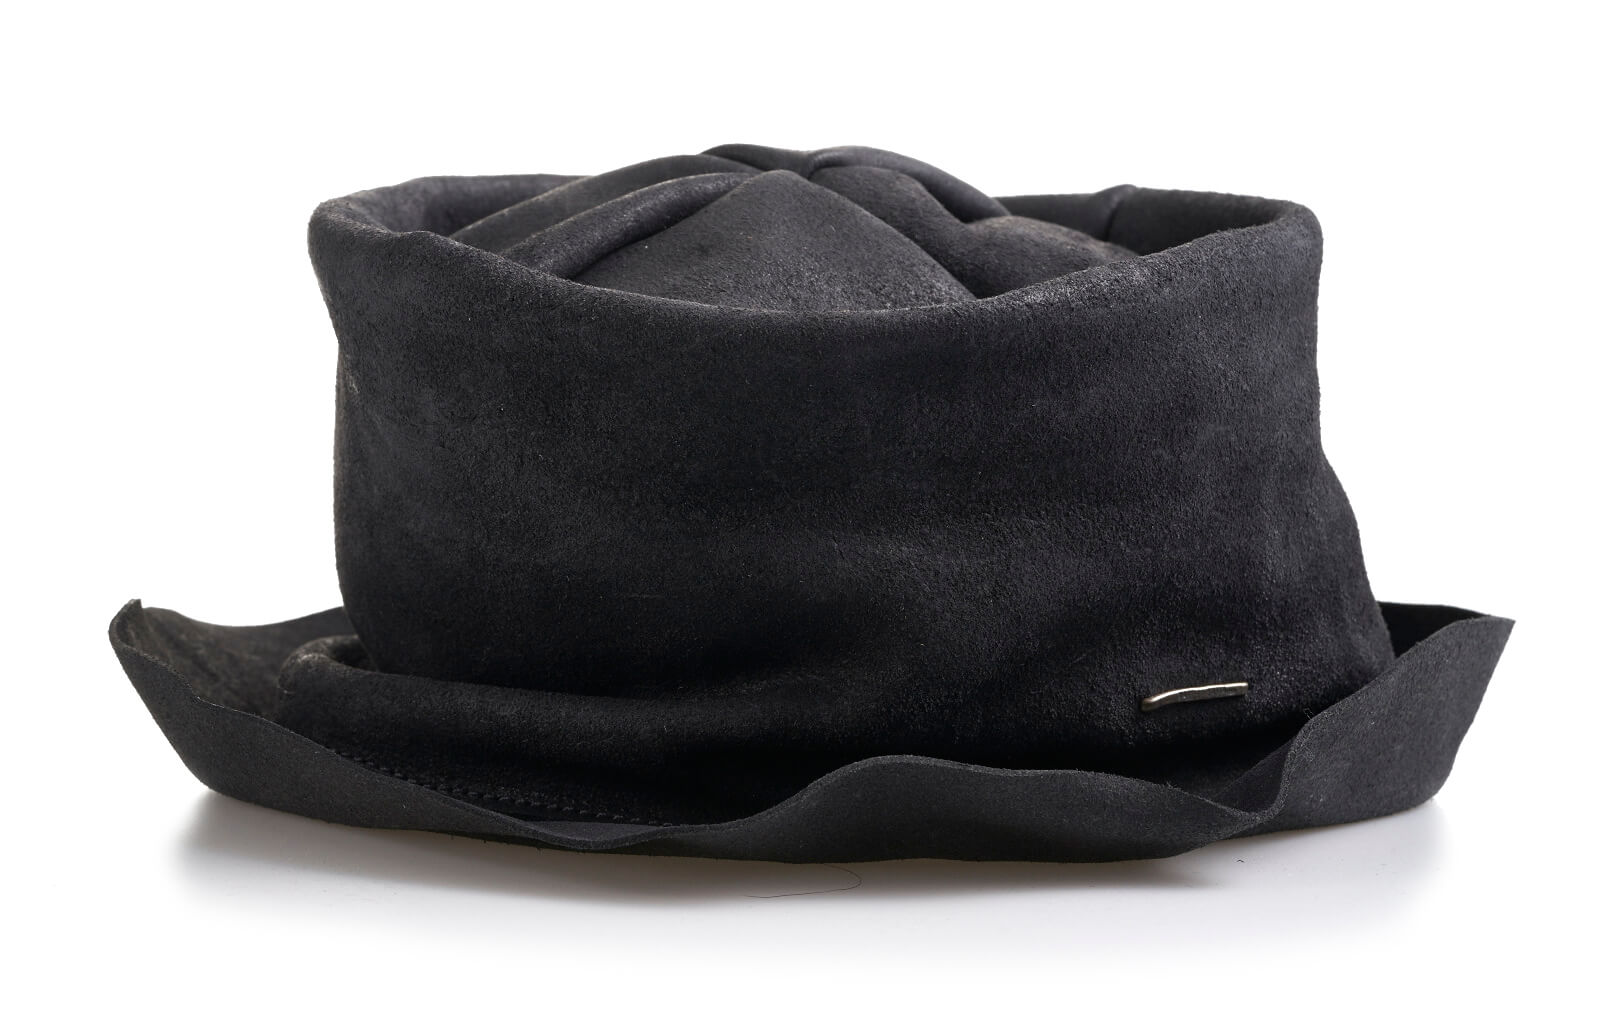 daniele basta leather and silver hats - pope hat front